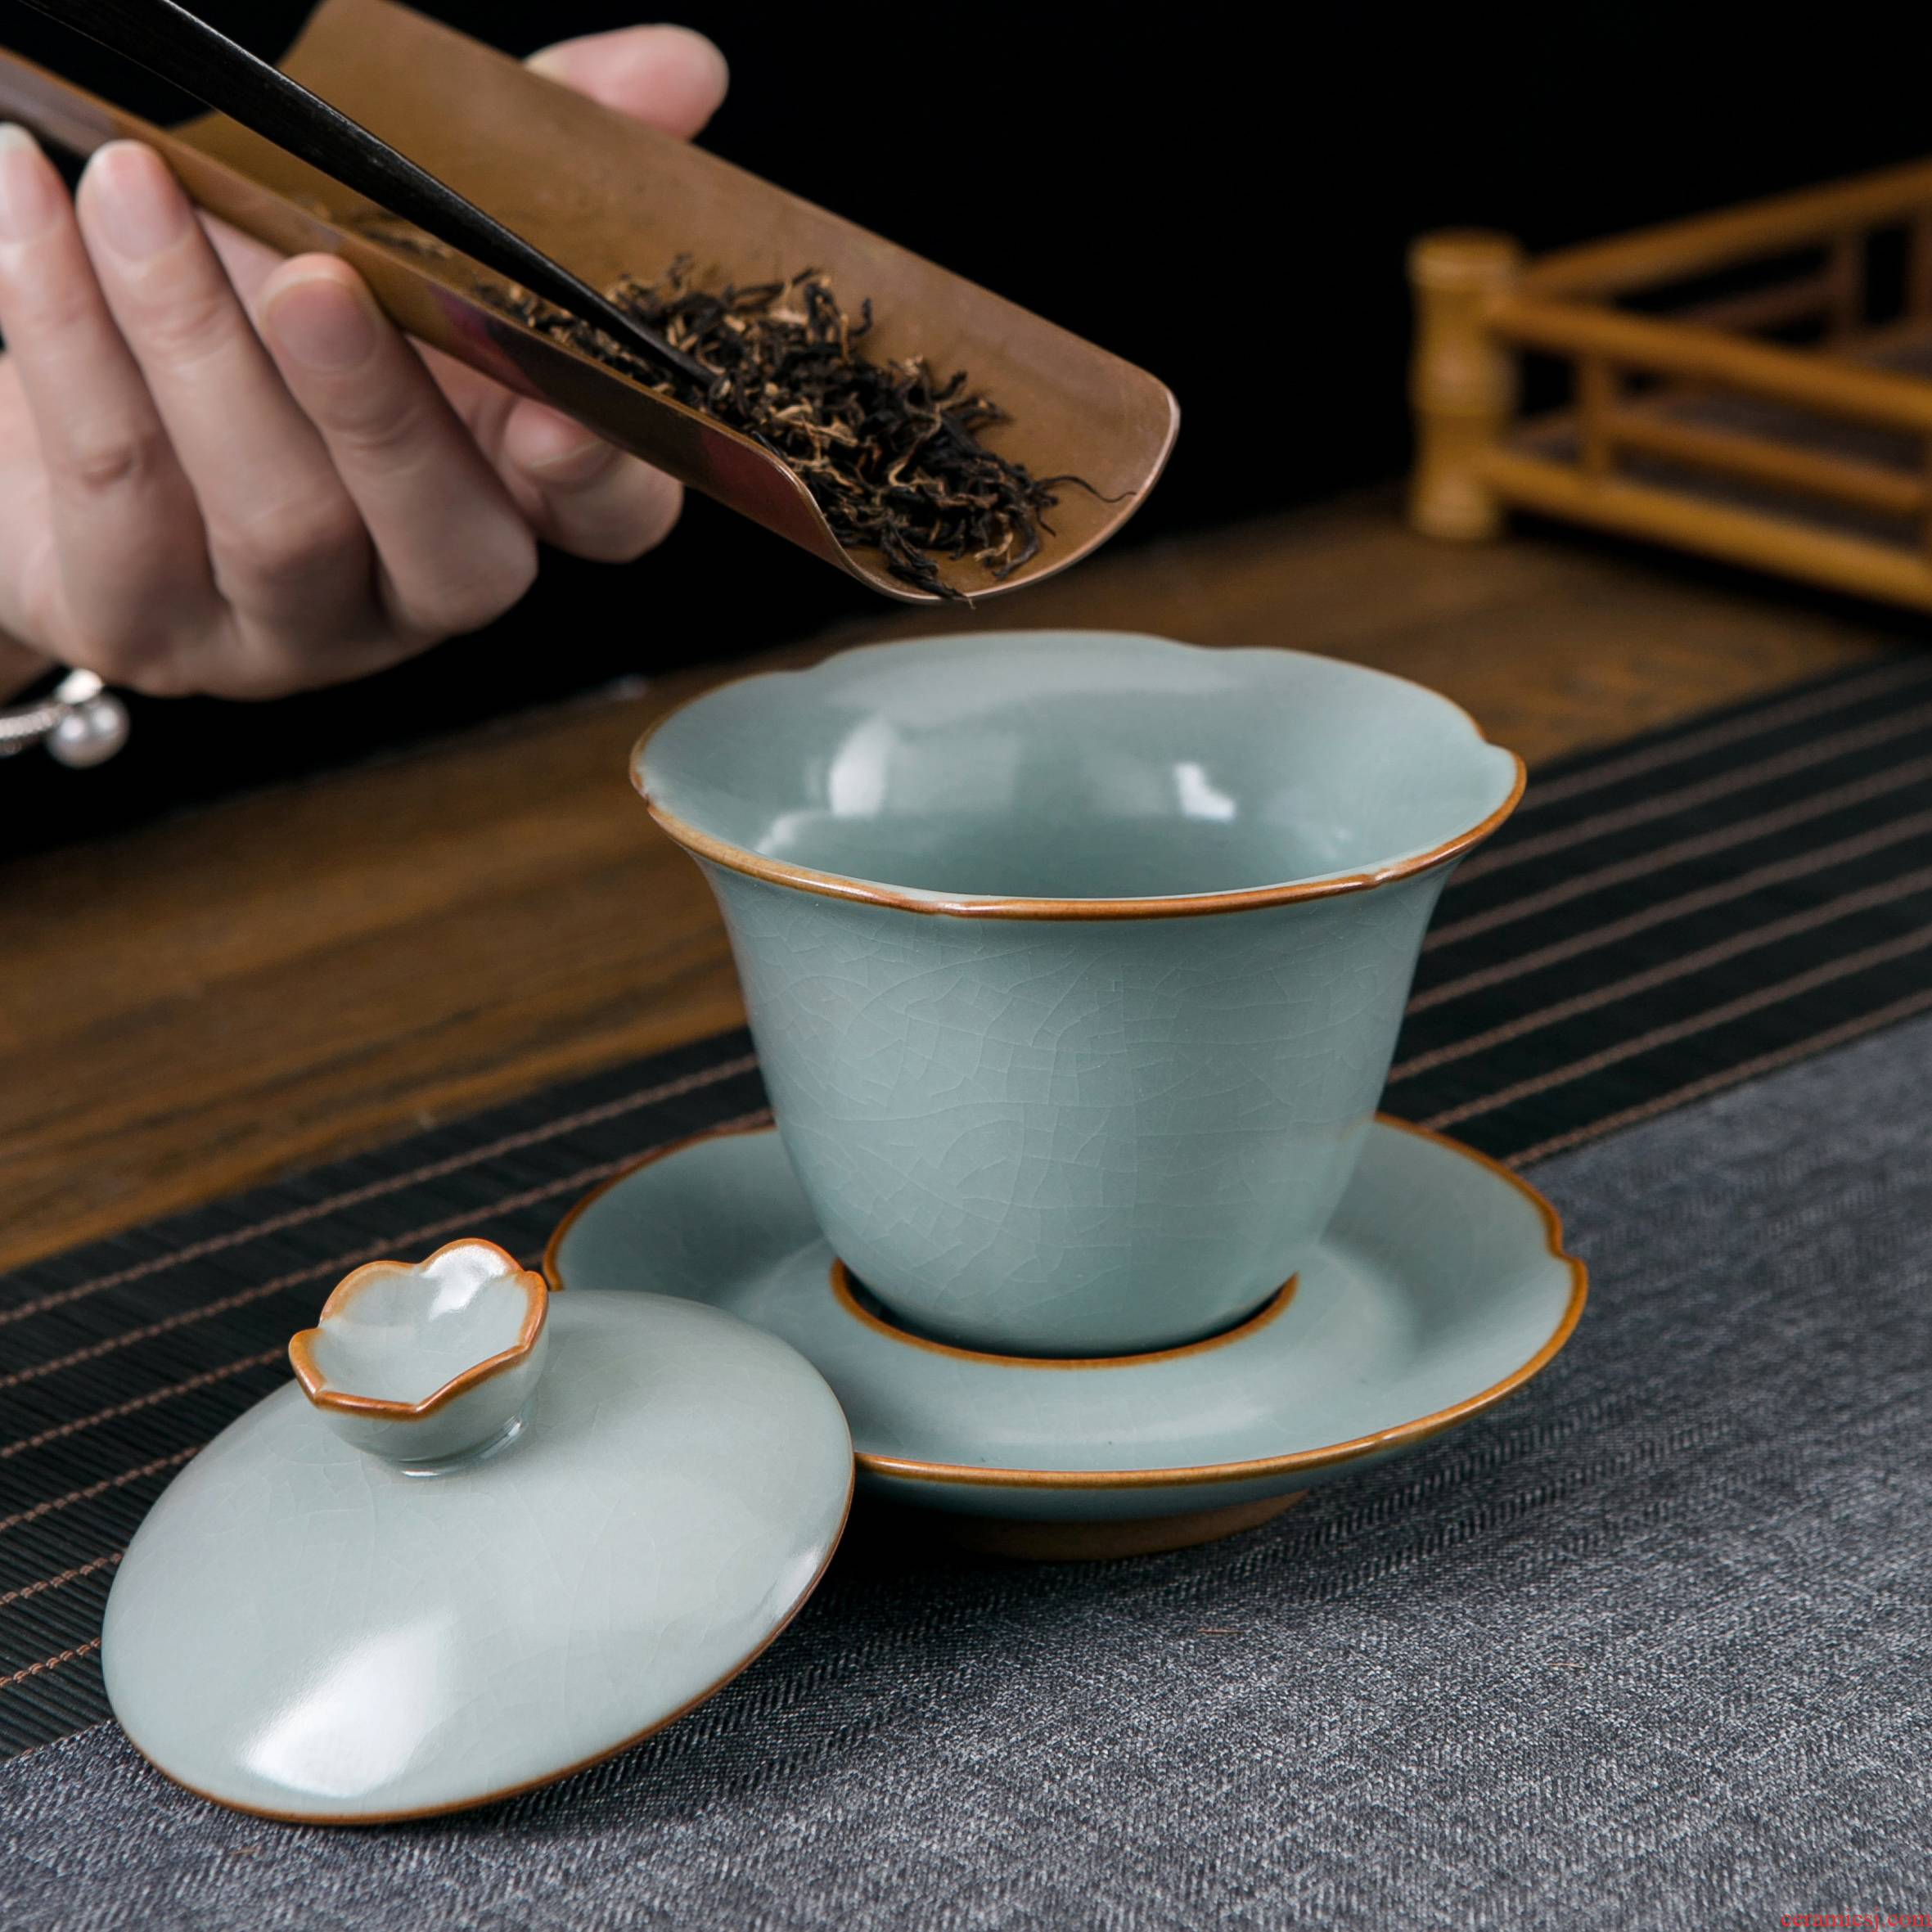 Jingdezhen ceramic kung fu tea set to open three tureen teacup only a single piece of your up is not large tea bowl